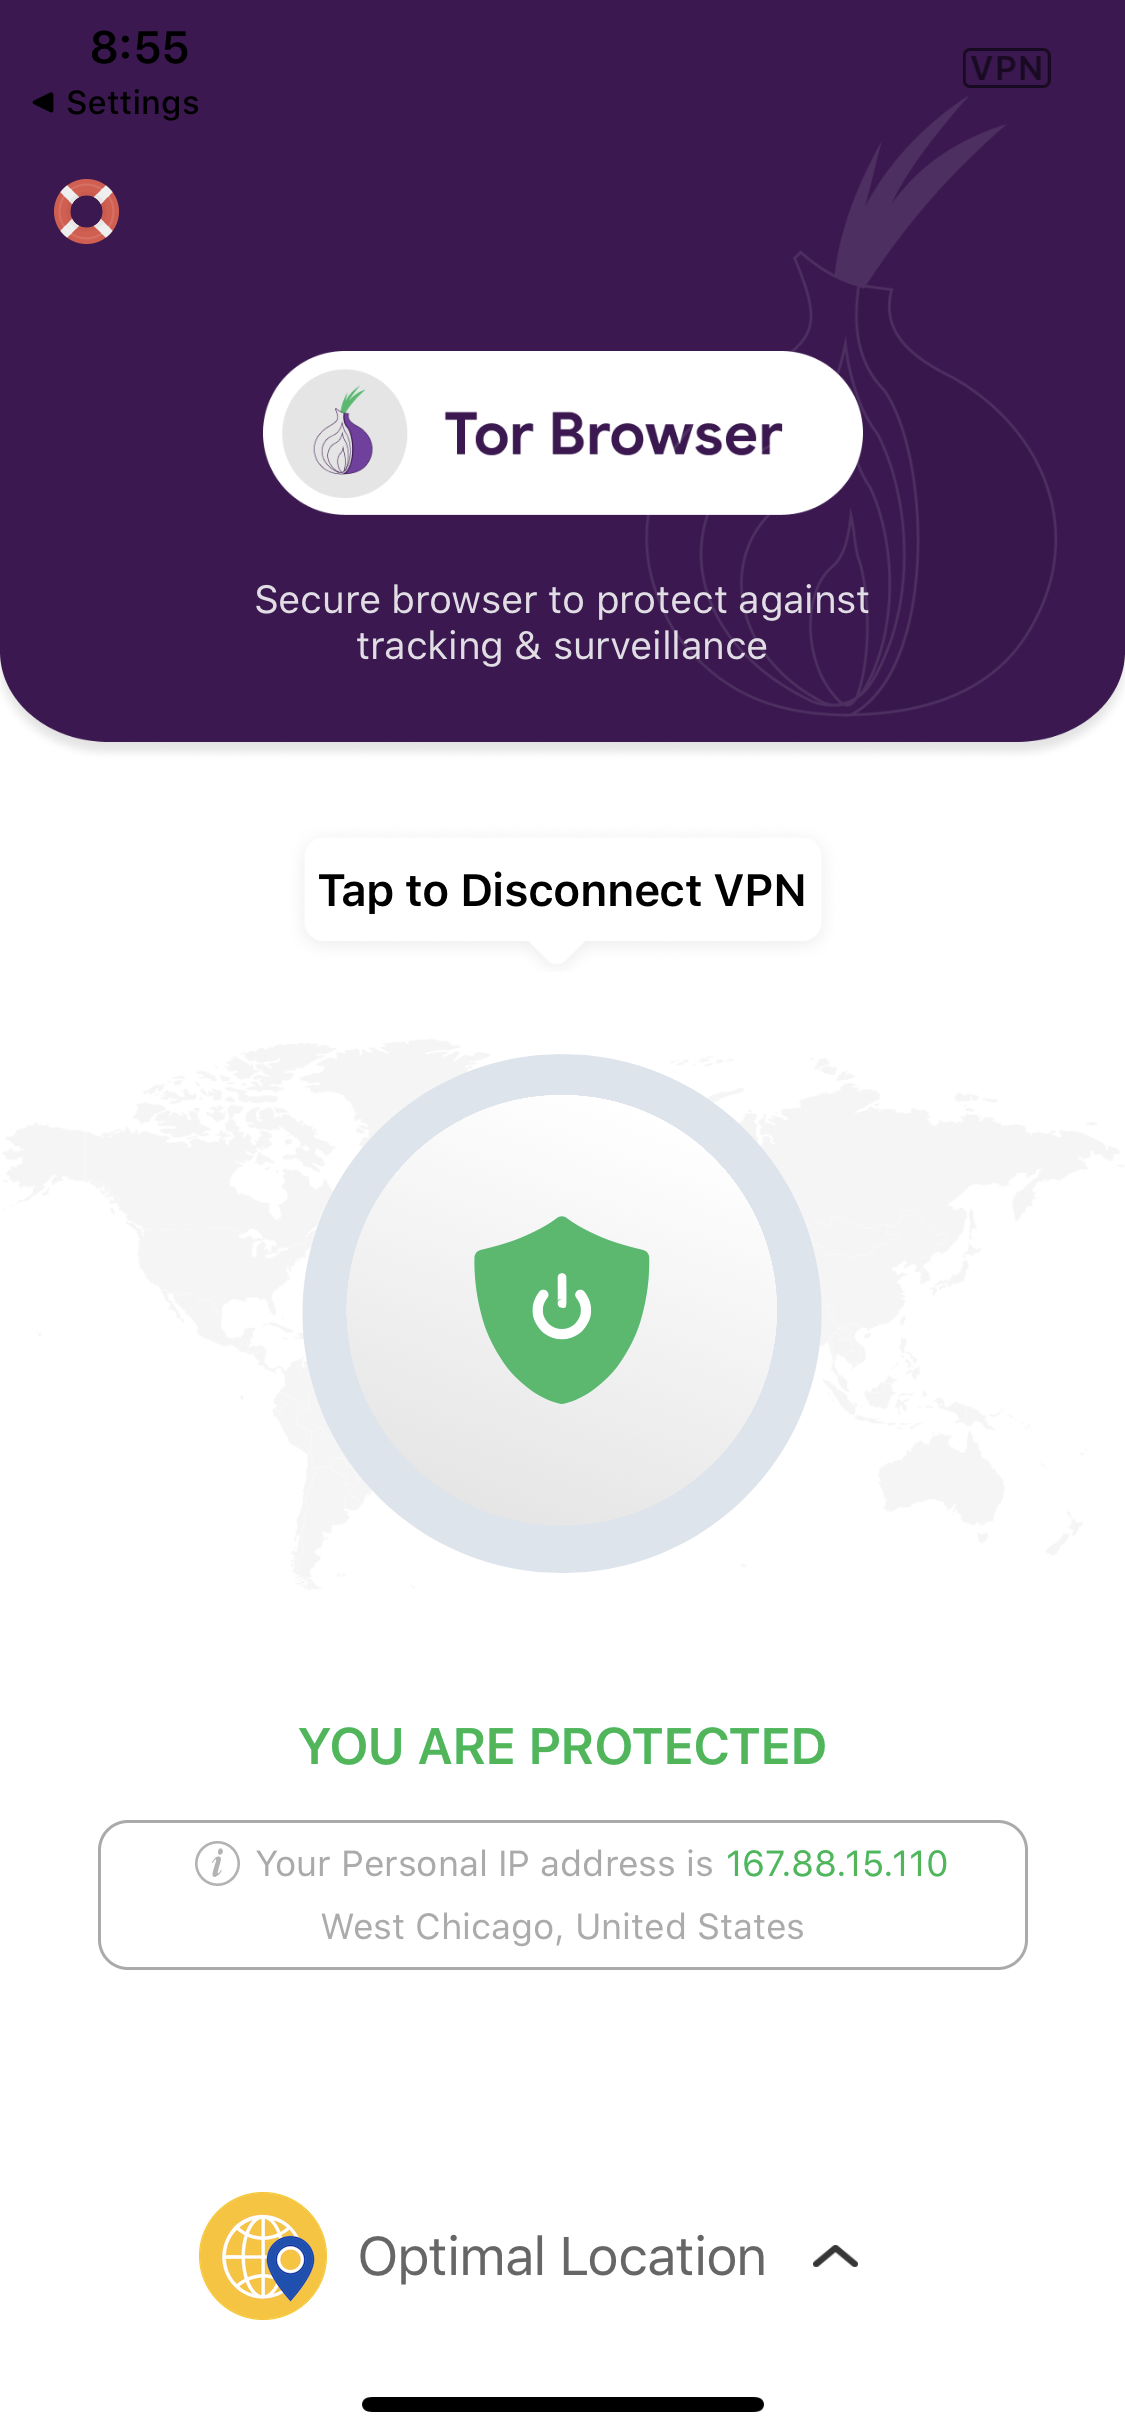 33657a8fa51fc63c578ddc71d77c2770 - How To Change Location On Iphone Vpn